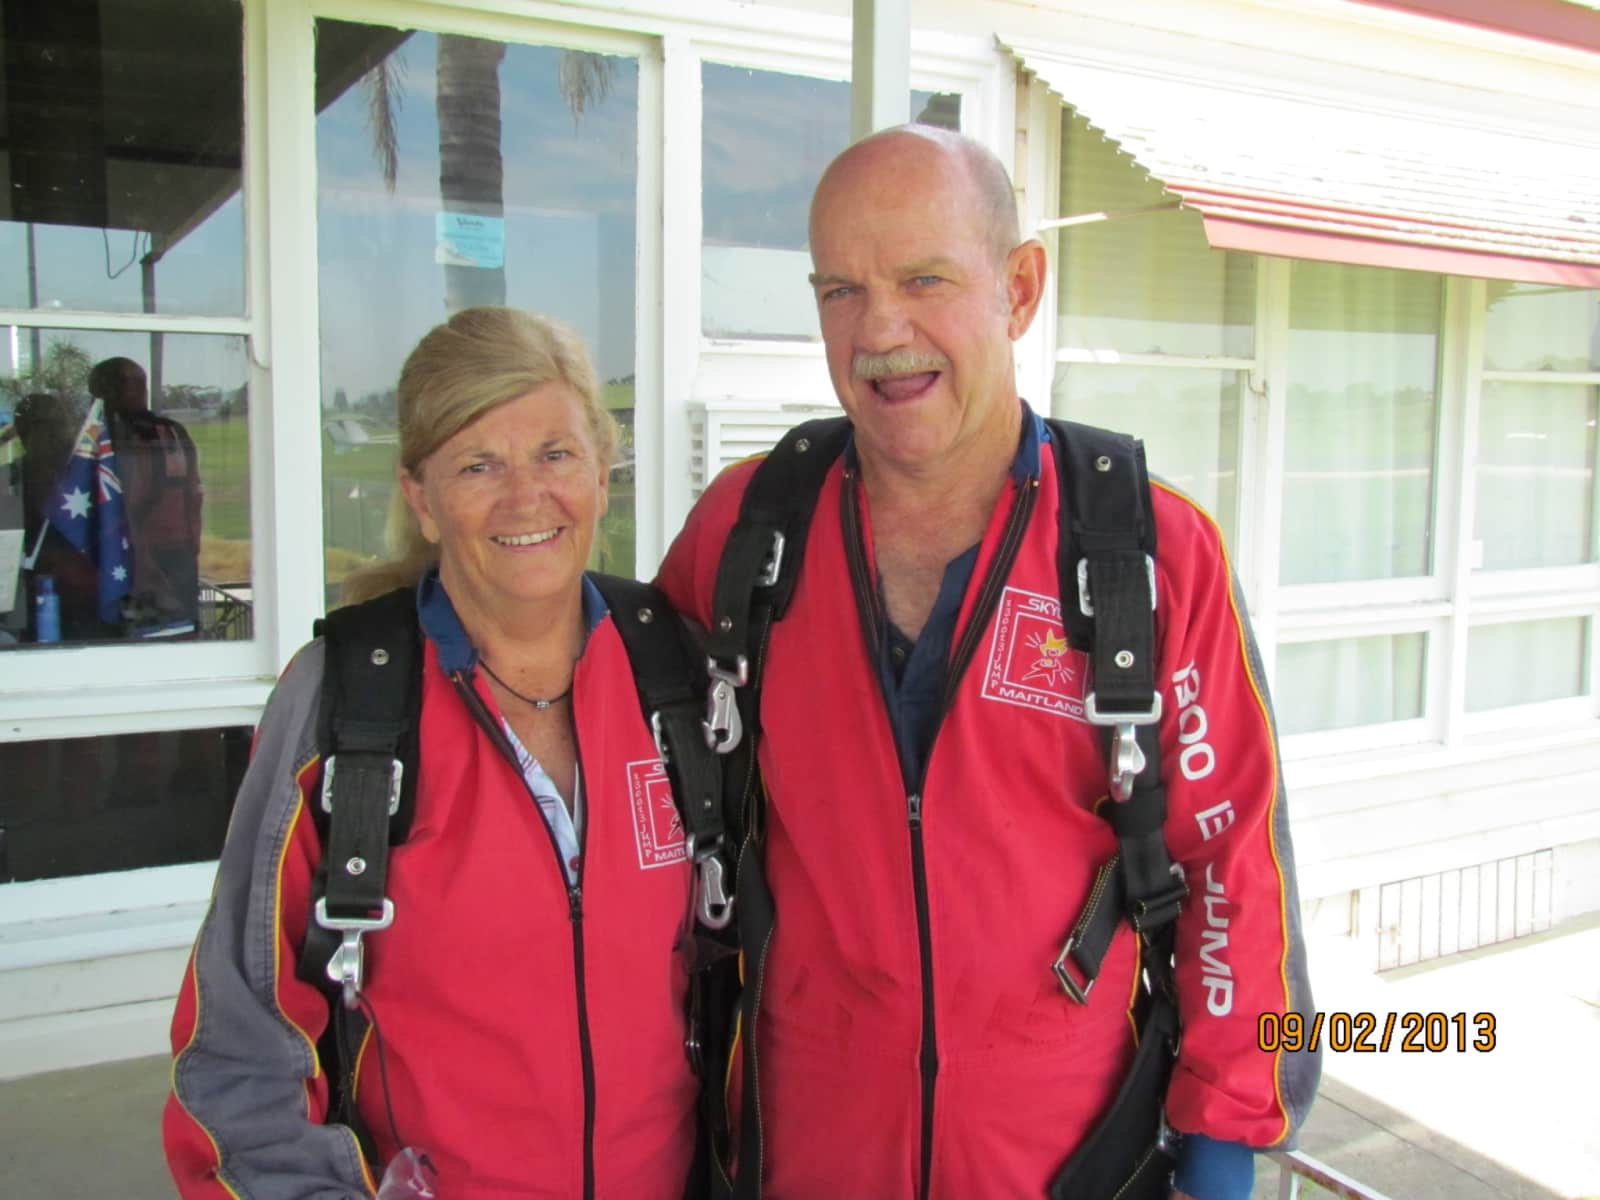 Margaret & David from Newcastle, New South Wales, Australia